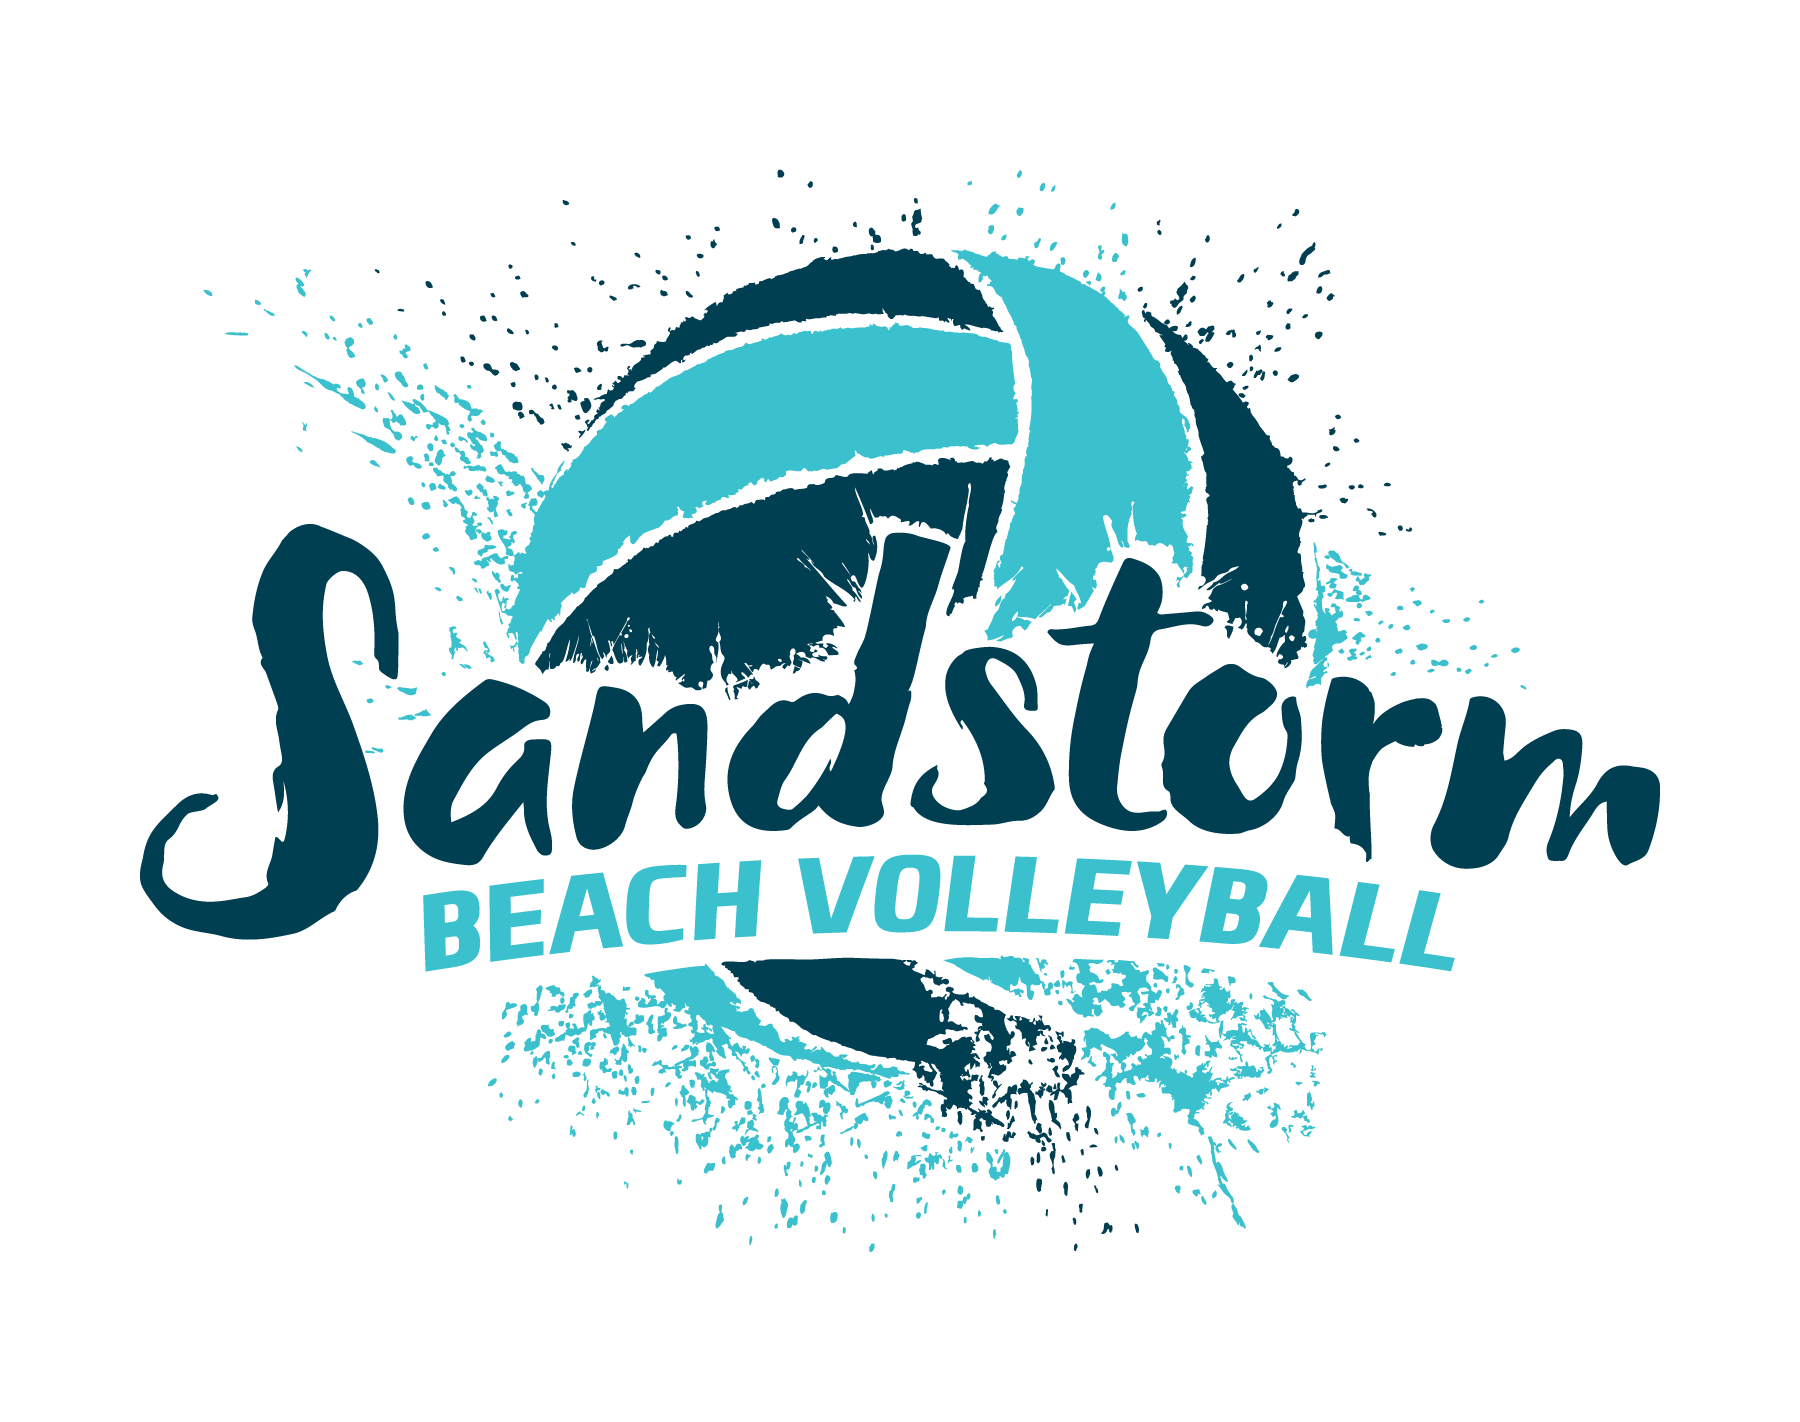 Sandstorm Beach Volleyball